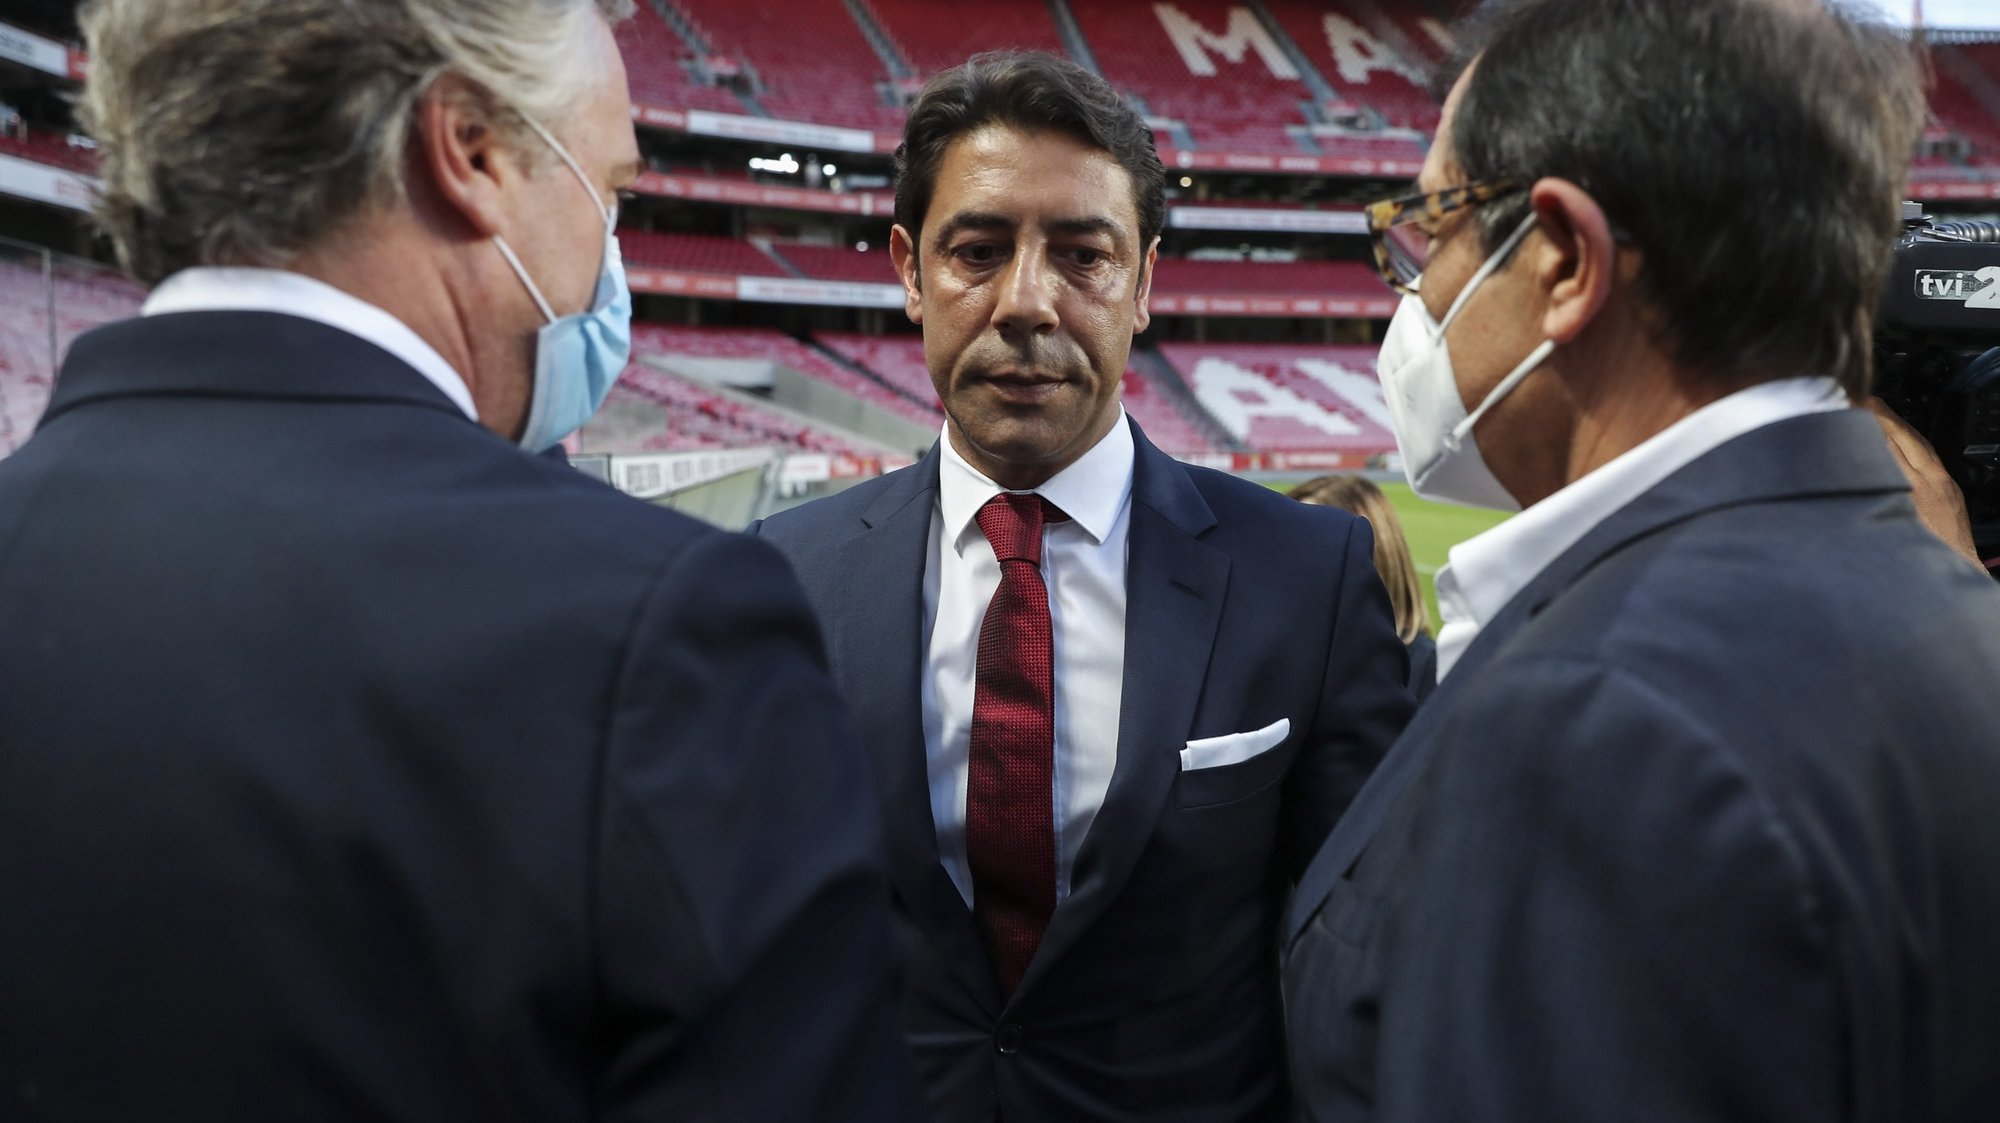 epa09334697 Former Portuguese player Rui Costa (C) is greeted by club officials after being appointed new president of Portuguese soccer club Benfica in Lisbon, Portugal. 09 July 2021. Rui Costa replaced Luis Filipe Vieira, who suspended his duties after he was detained as part of an investigation into alleged tax fraud and money laundering.  EPA/MIGUEL A. LOPES